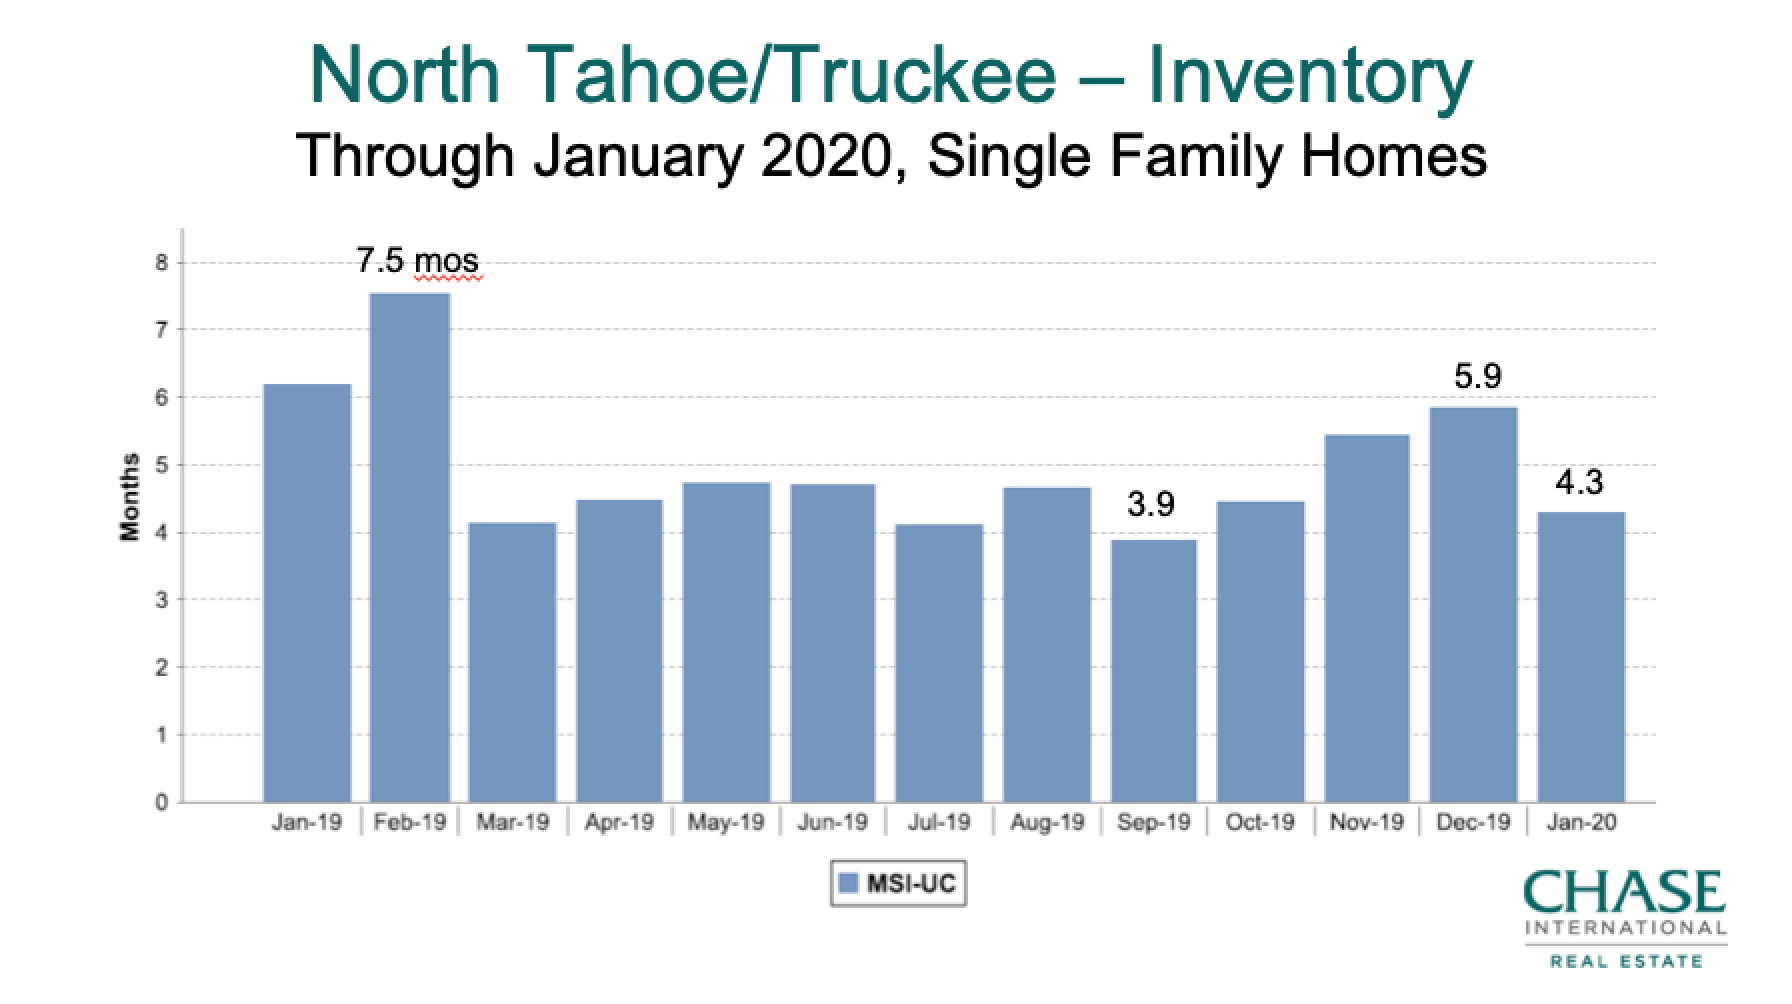 North Tahoe Truckee Housing Supply 2019-Jan 2020